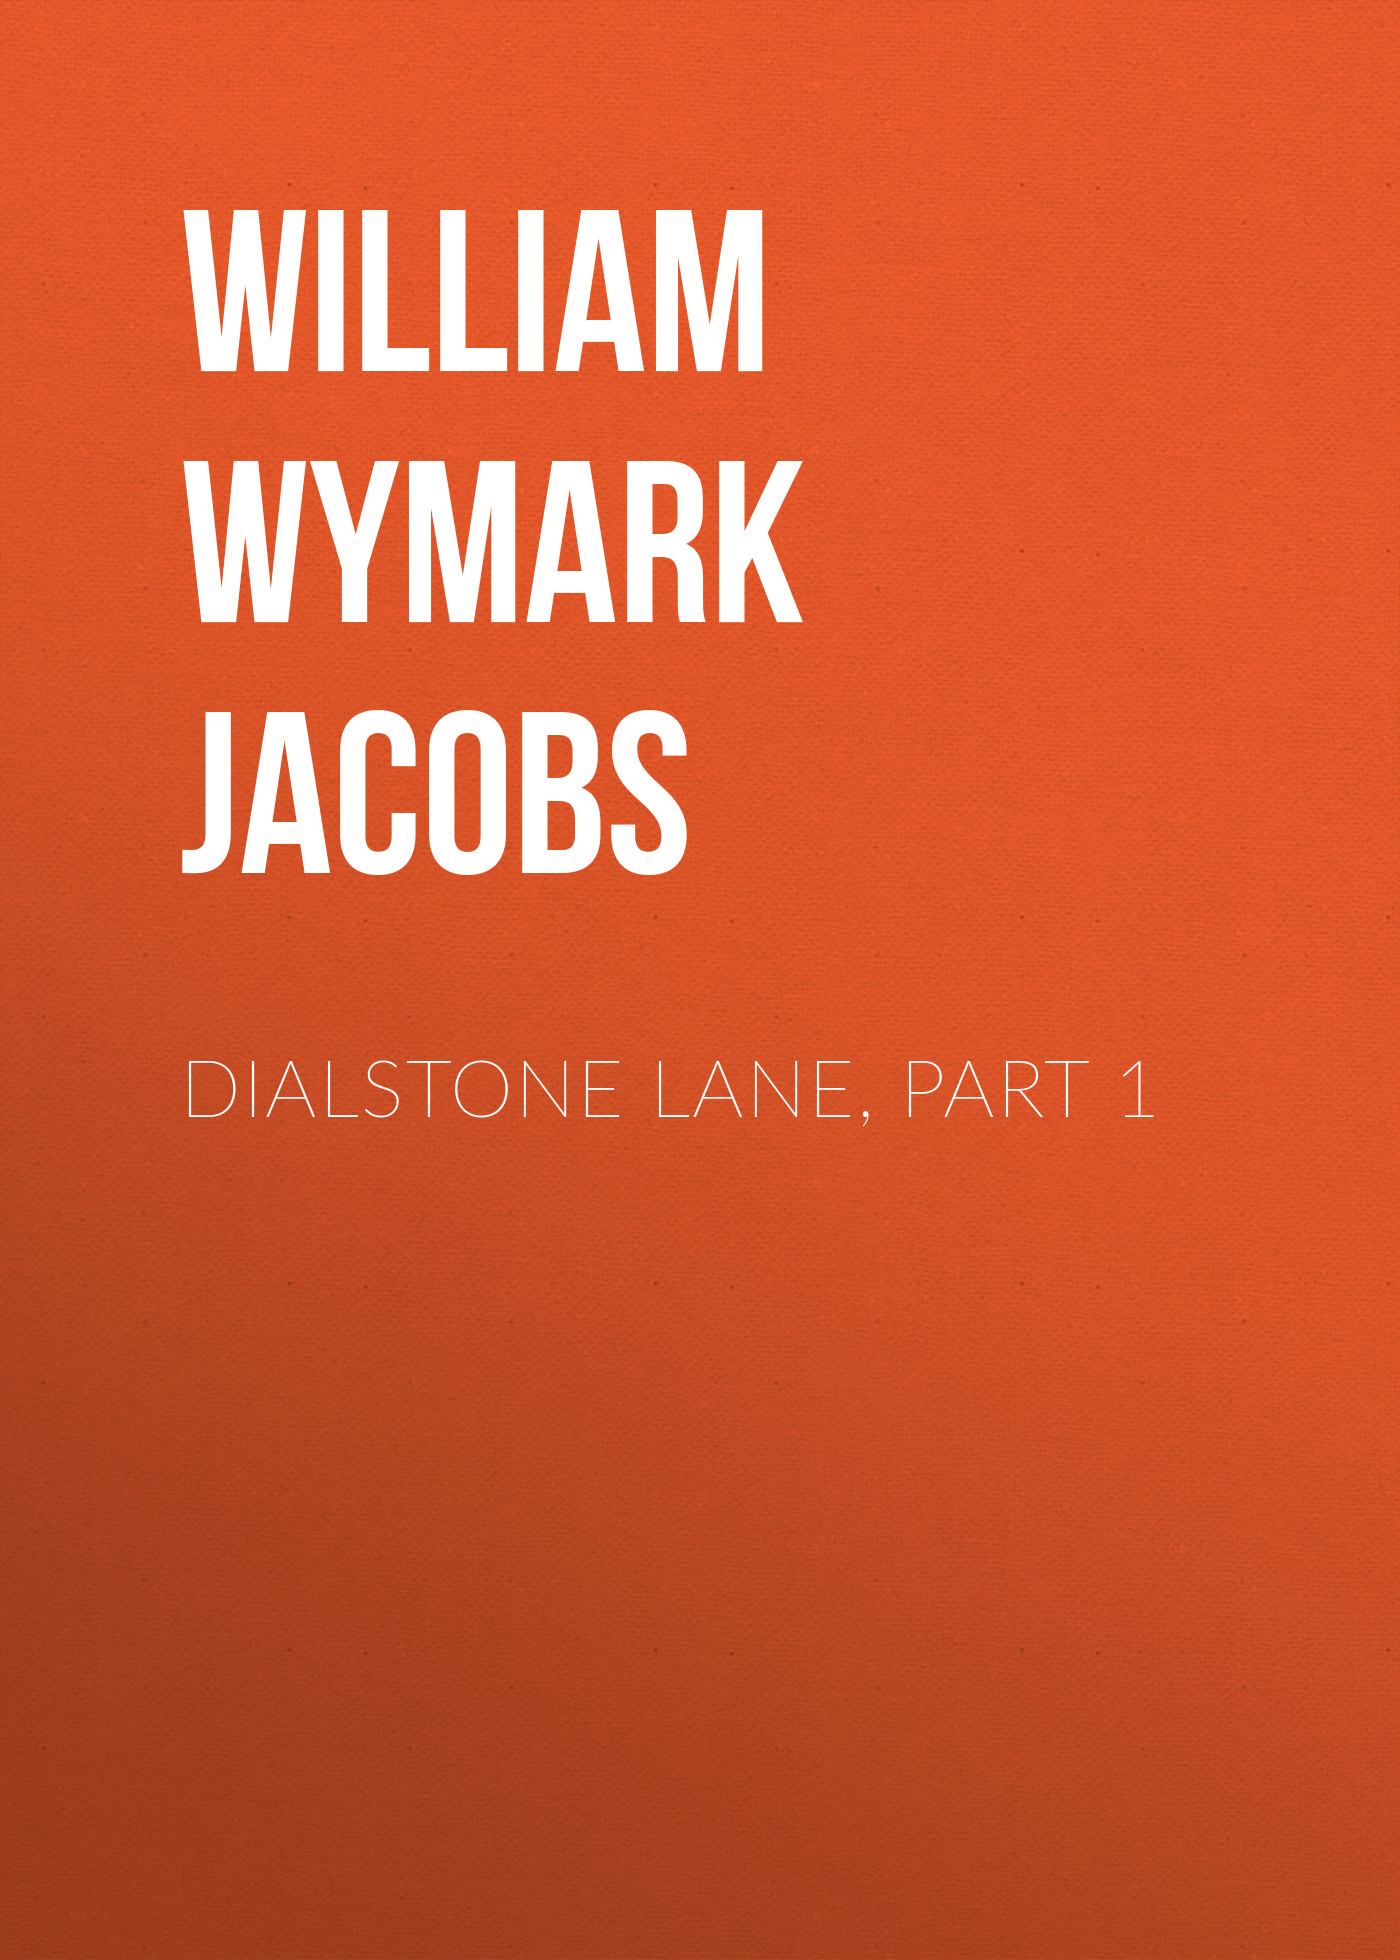 лучшая цена William Wymark Jacobs Dialstone Lane, Part 1